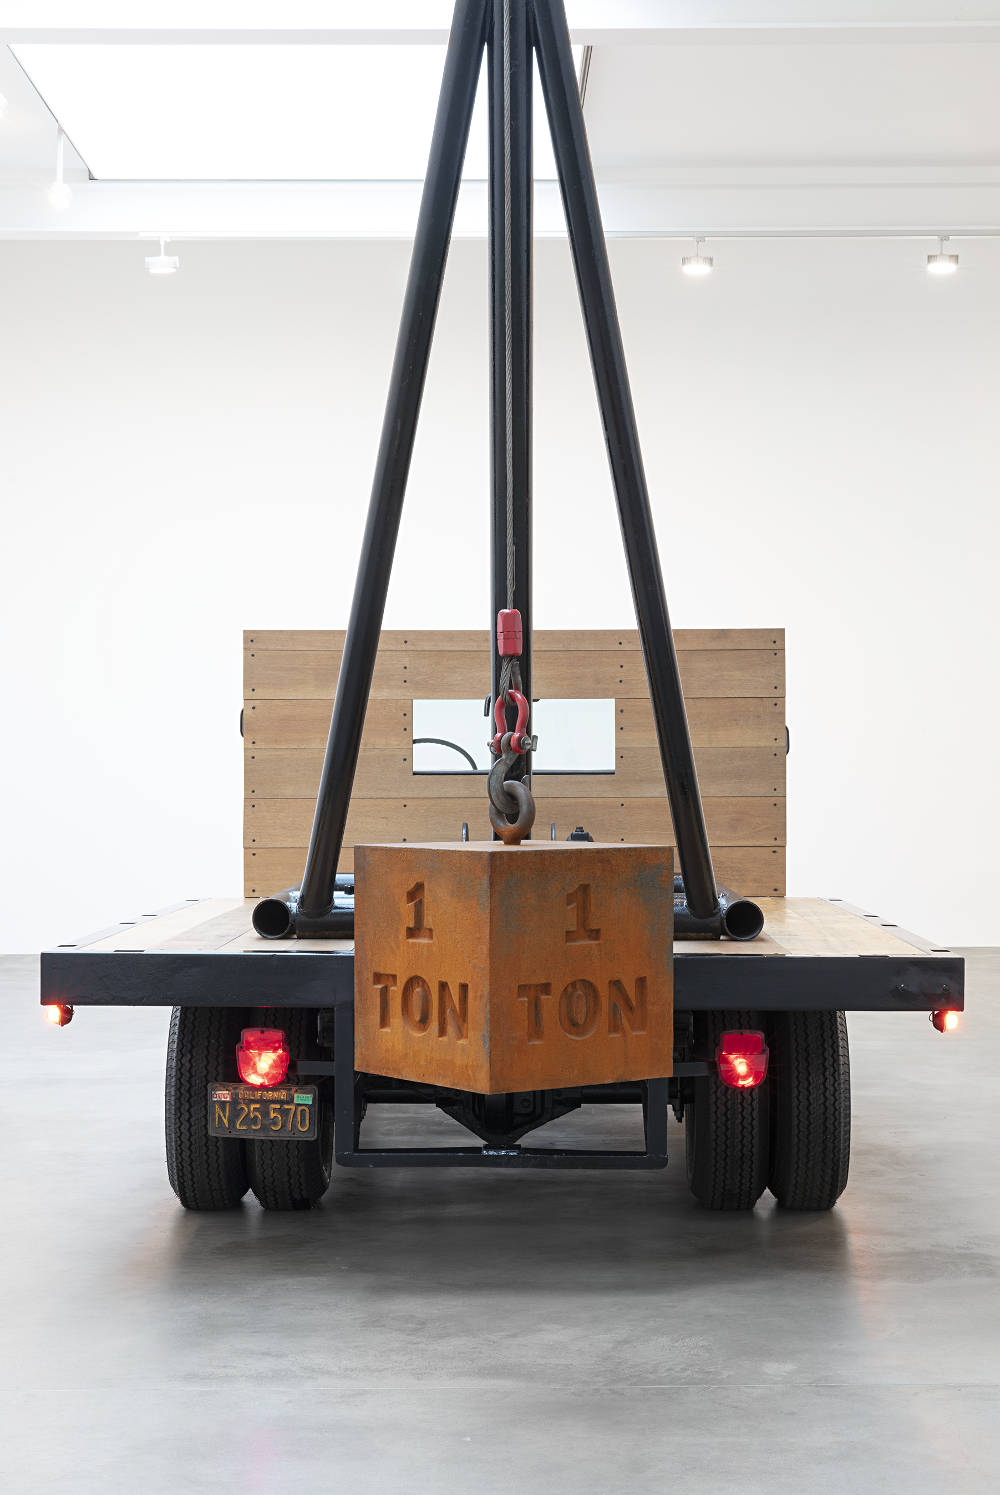 CHRIS BURDEN, 1 Ton Crane Truck, 2009. Restored 1964 F350 Ford crane truck with 1 ton cast iron weight 168 x 274 x 96 inches 426.7 x 696 x 243.8 cm © 2018 Chris Burden / licensed by The Chris Burden Estate and Artists Rights Society (ARS), New York. Photo: Lucy Dawkins. Courtesy of Gagosian